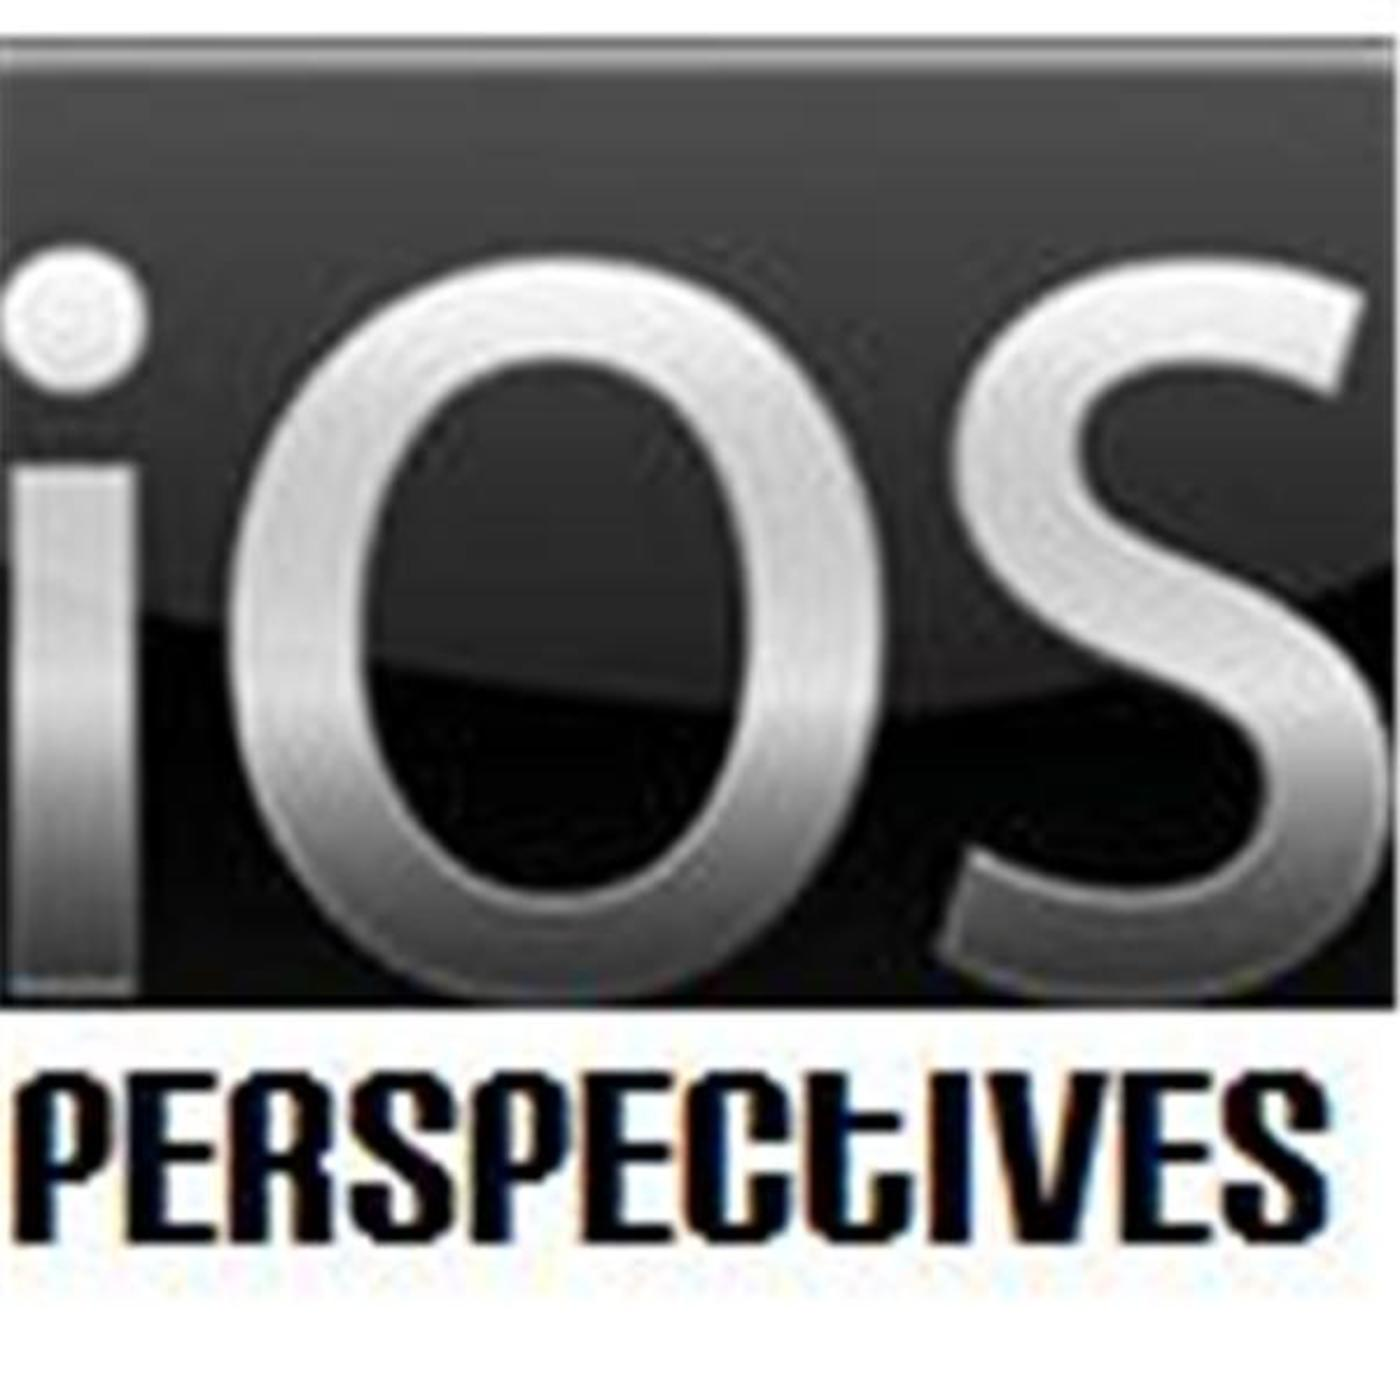 iOS Perspectives